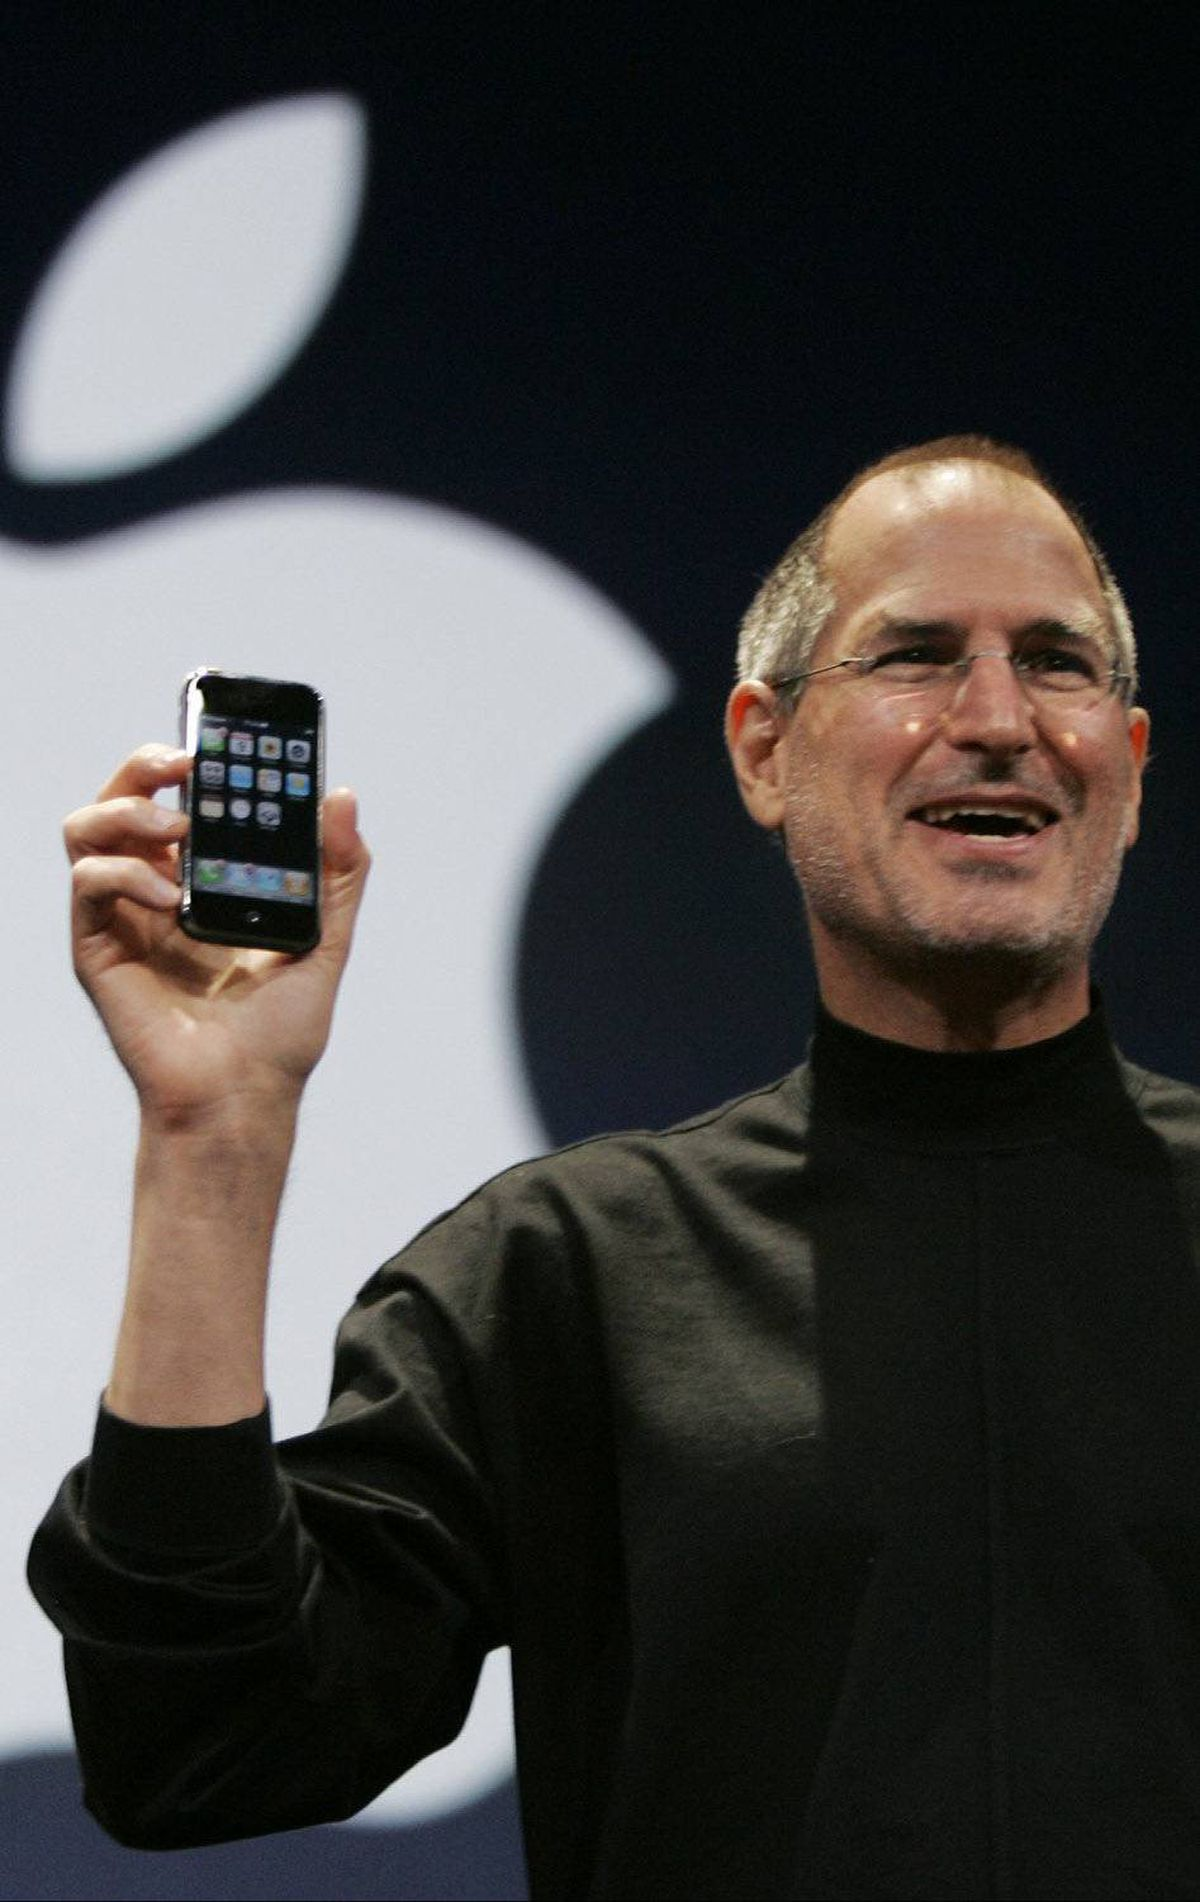 Apple CEO Steve Jobs holds up the new iPhone during his keynote address at MacWorld Conference & Expo in San Francisco, Tuesday, Jan. 9, 2007. (AP Photo/Paul Sakuma)